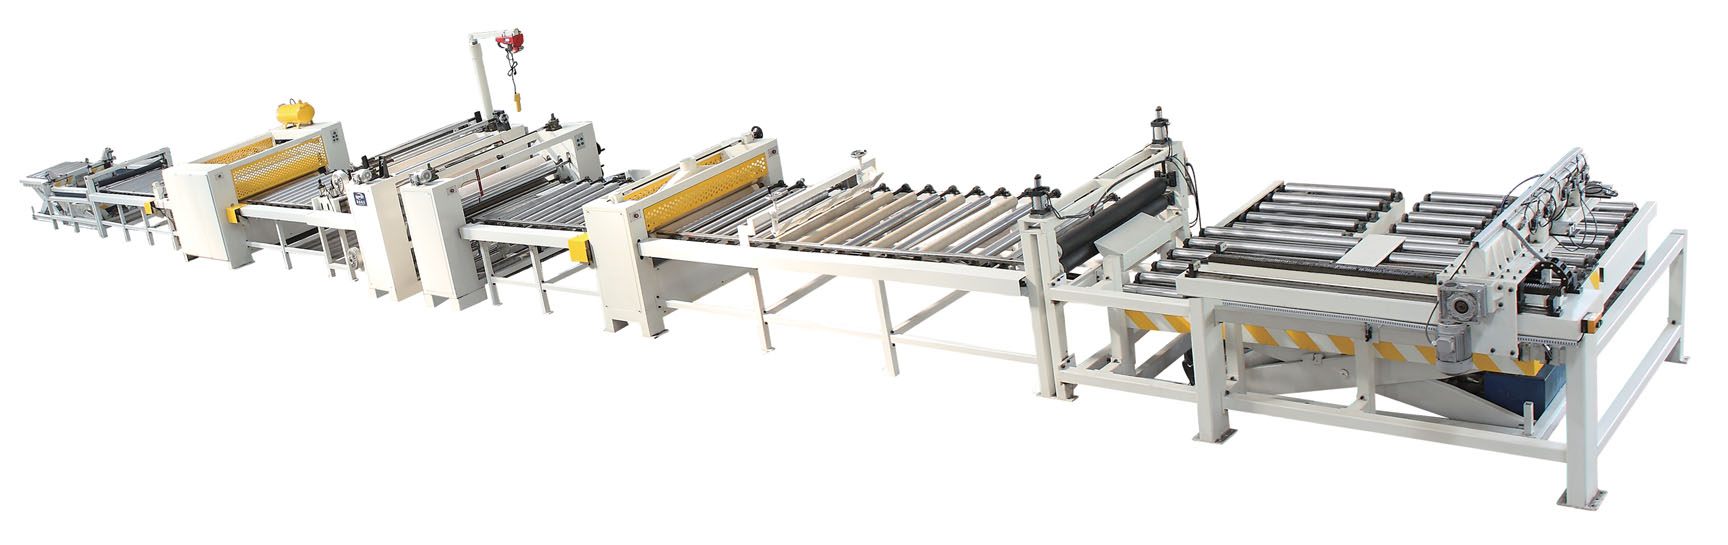 Door Compact Lamination Machine Manufacturers, Door Compact Lamination Machine Factory, Supply Door Compact Lamination Machine